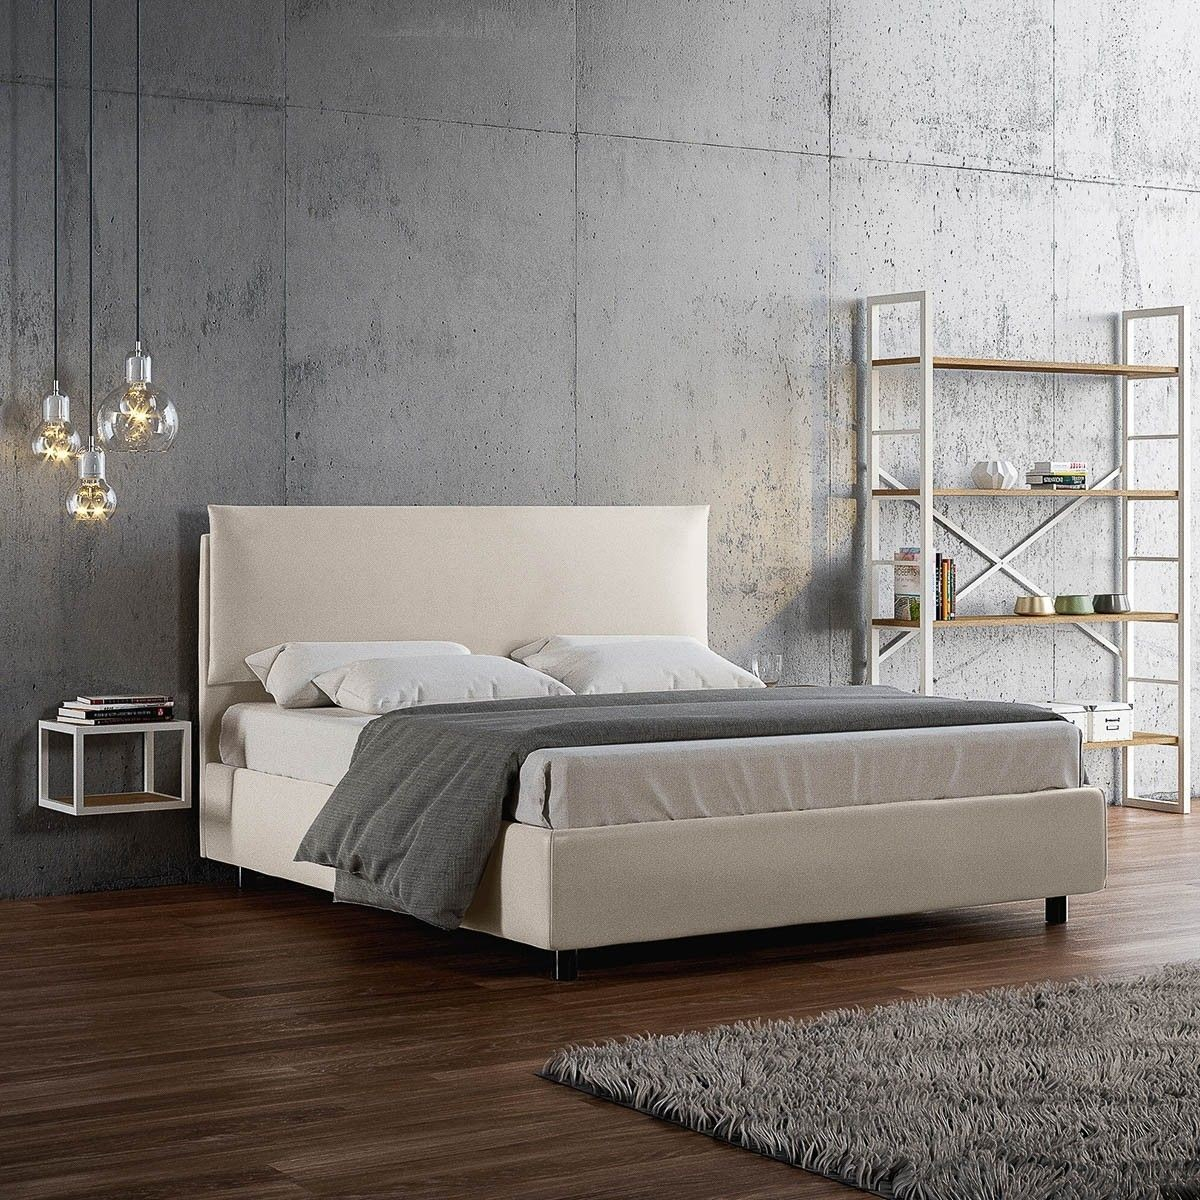 https://www.collyshop.it/media/catalog/product/cache/1/image/1200x1200/9df78eab33525d08d6e5fb8d27136e95/l/e/letto-matrimoniale-ecopelle-cuscino-colore-bianco-contenitore.jpg